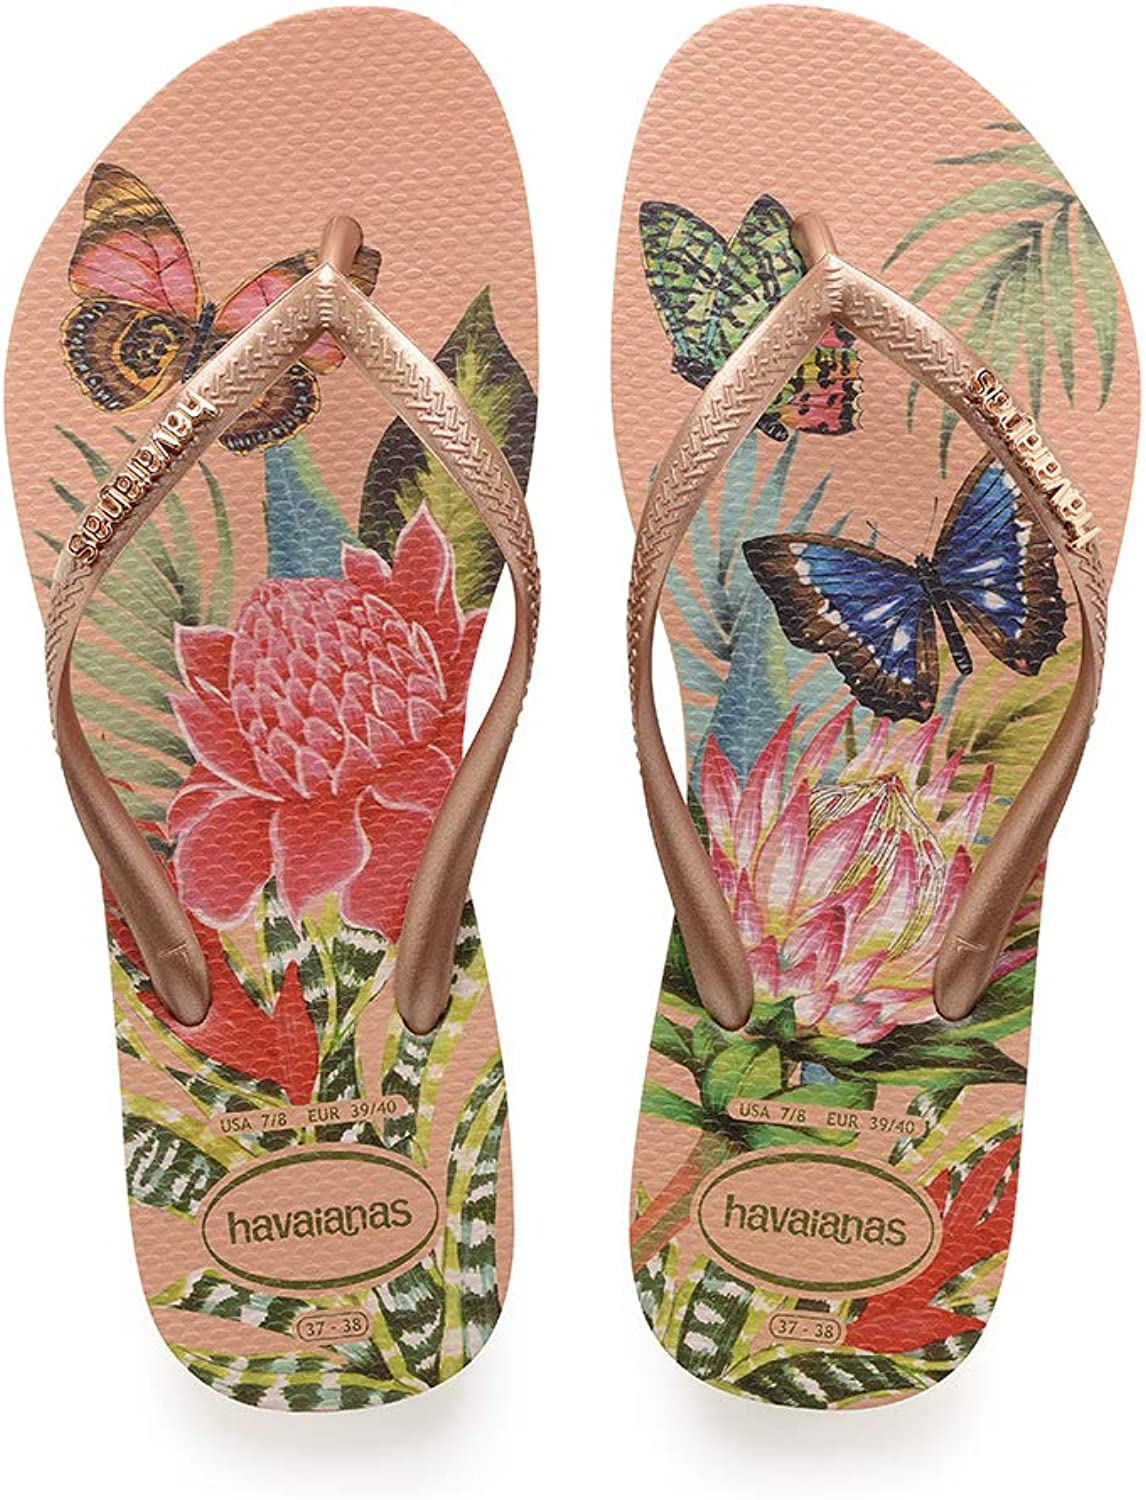 Havaianas Slim Tropical Salmon Nude Rubber Adult Flip Flops Sandals